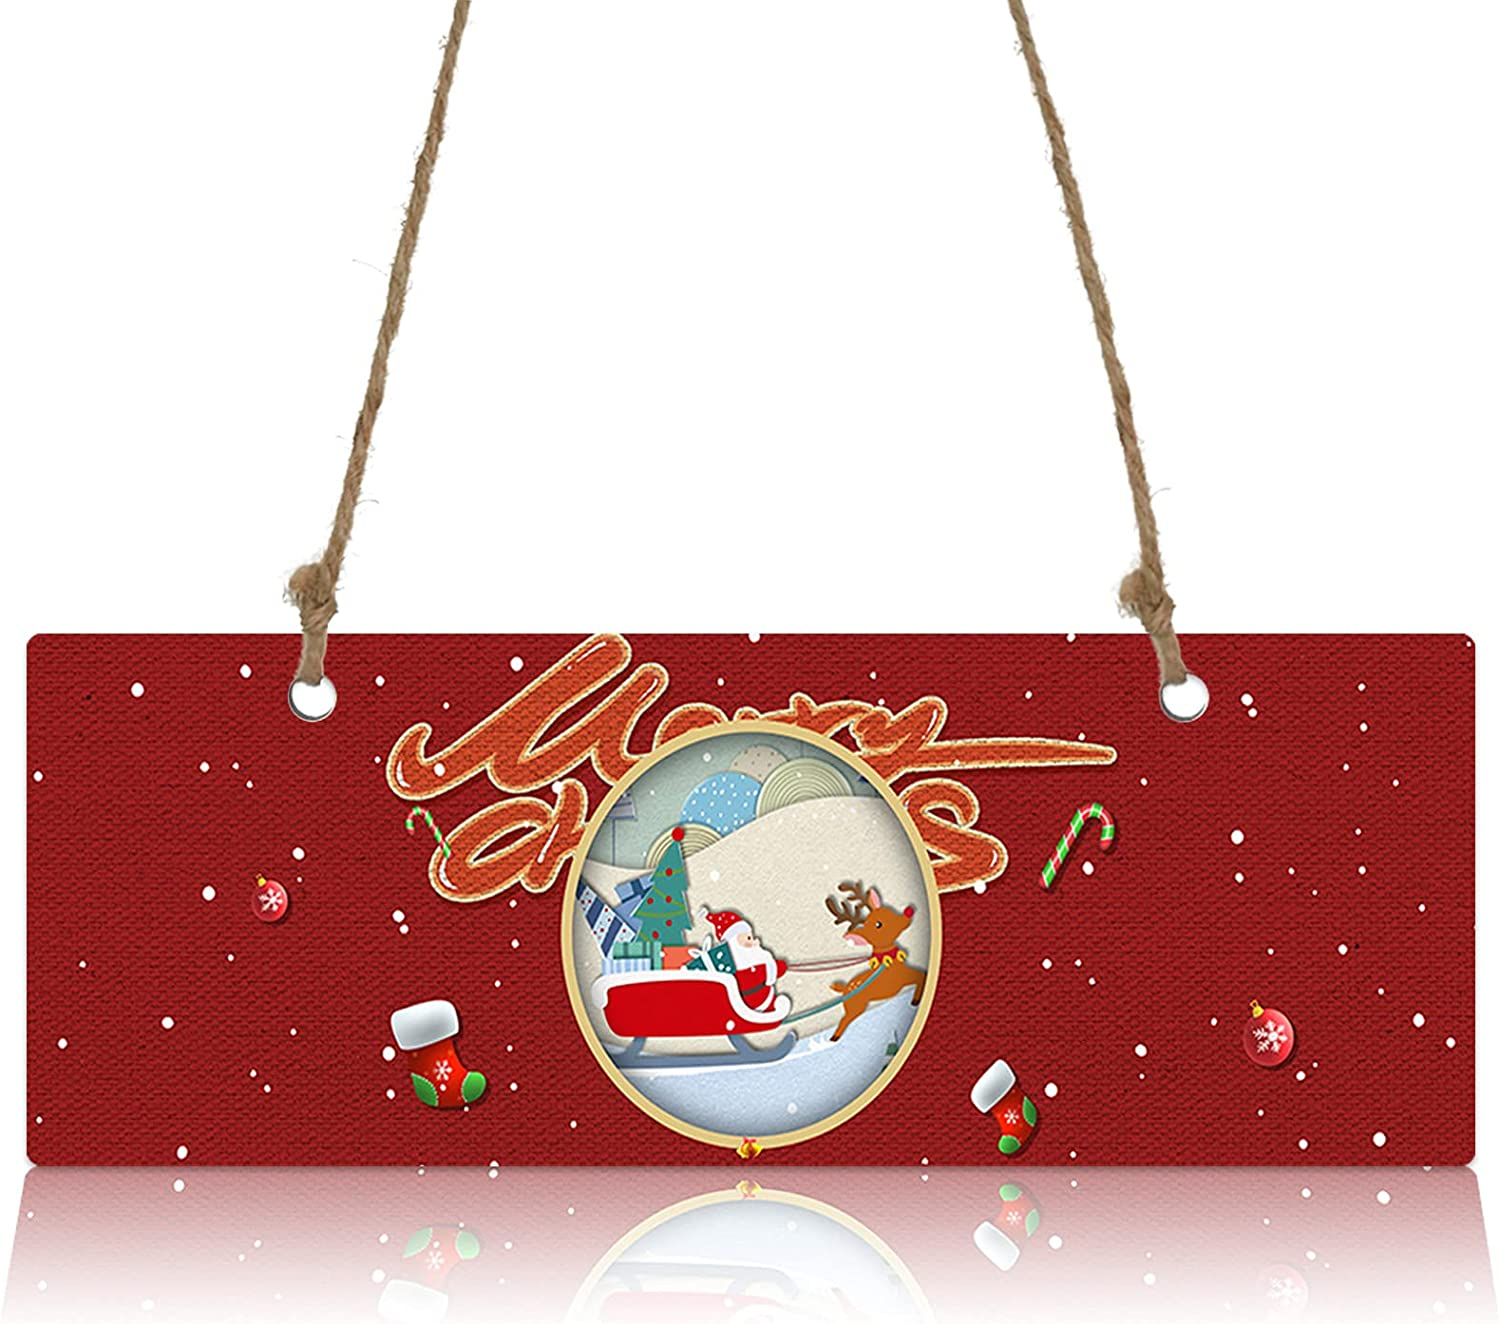 Wall Sign Wood Plaque Happy Christmas Price reduction with Super intense SALE Claus Sled Santa E on